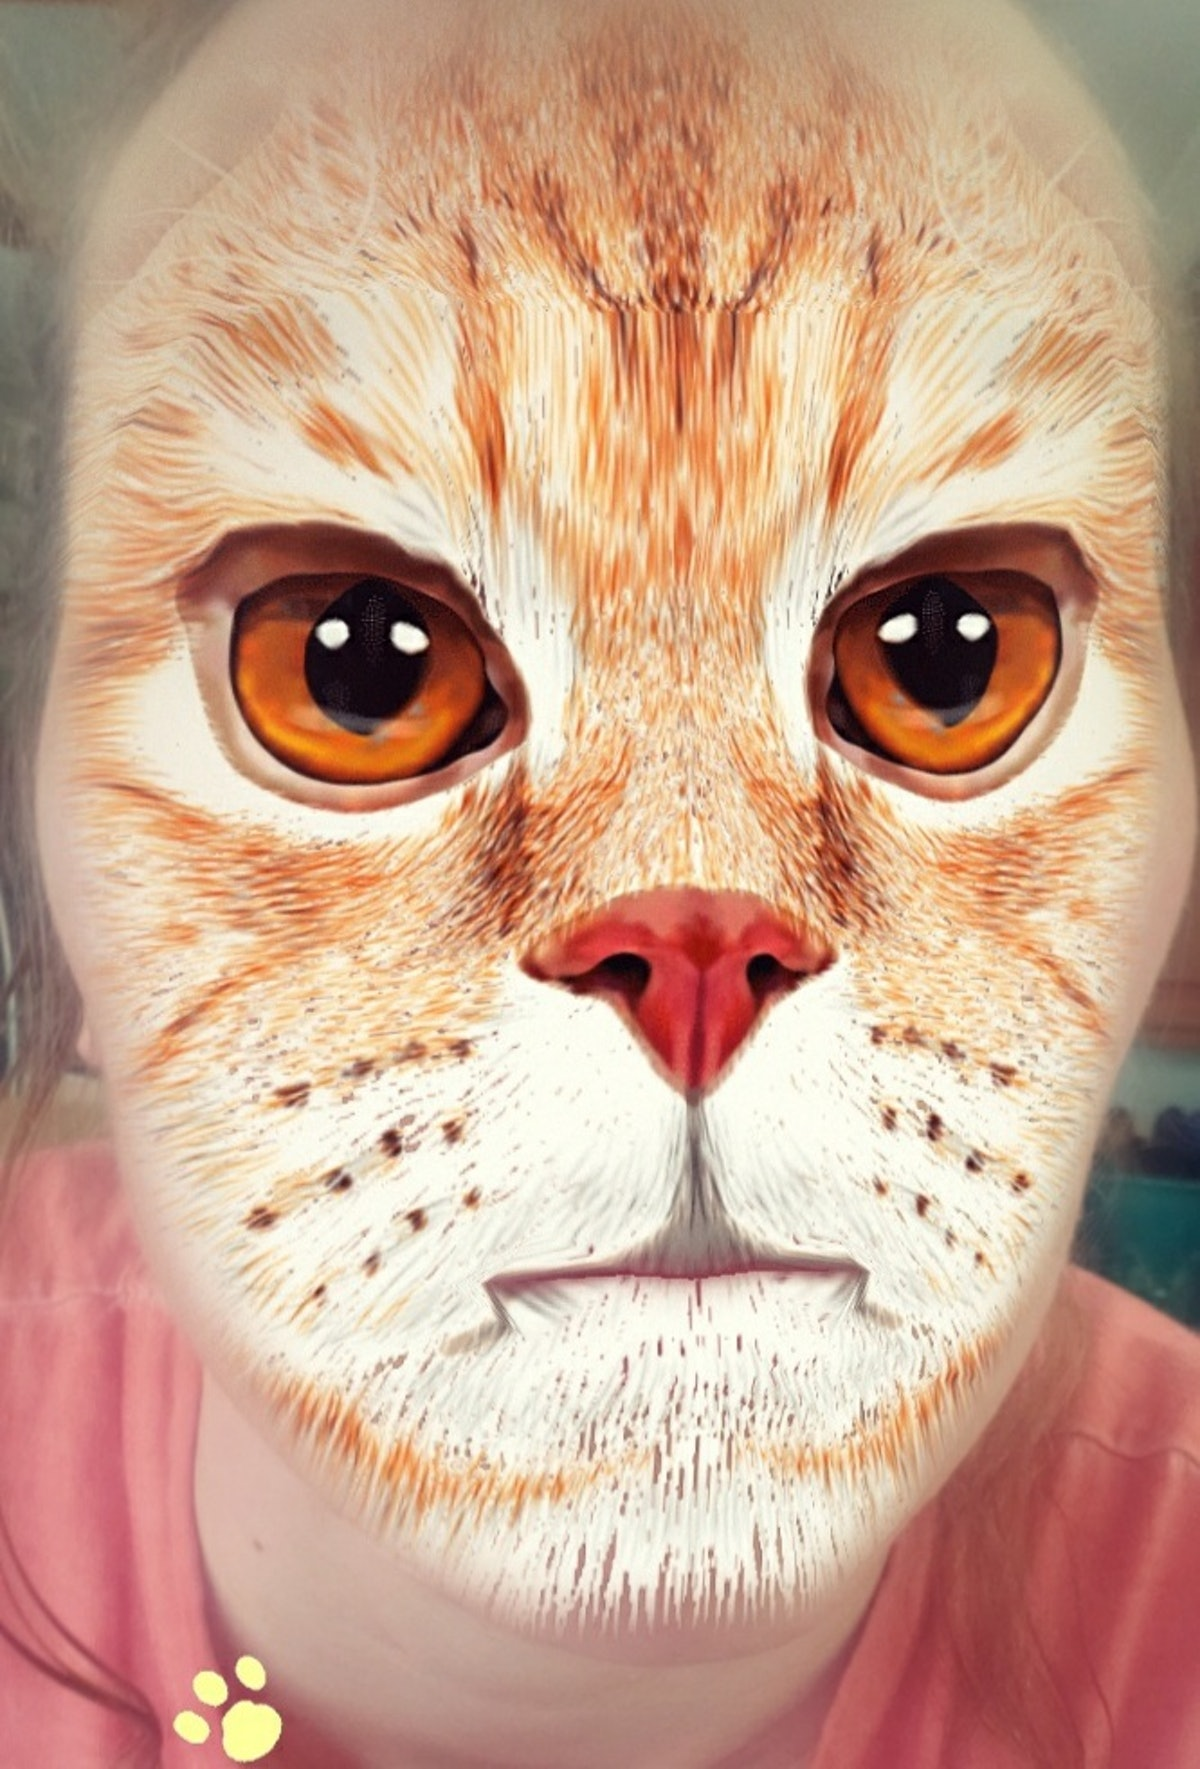 Here's how you can get a cat face filter on Snapchat to take funny vids.